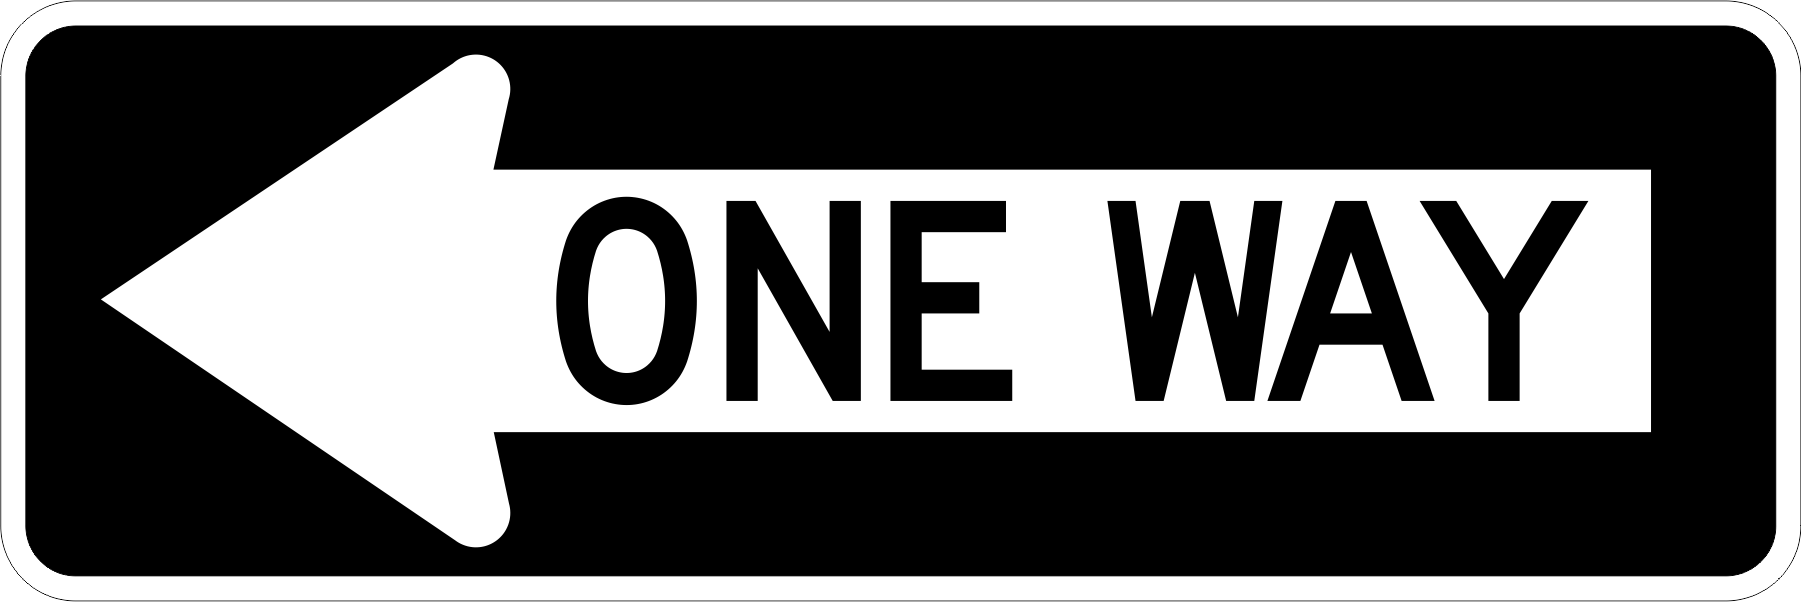 R6 1 One Way Arrow   Time Signs Manufacturing